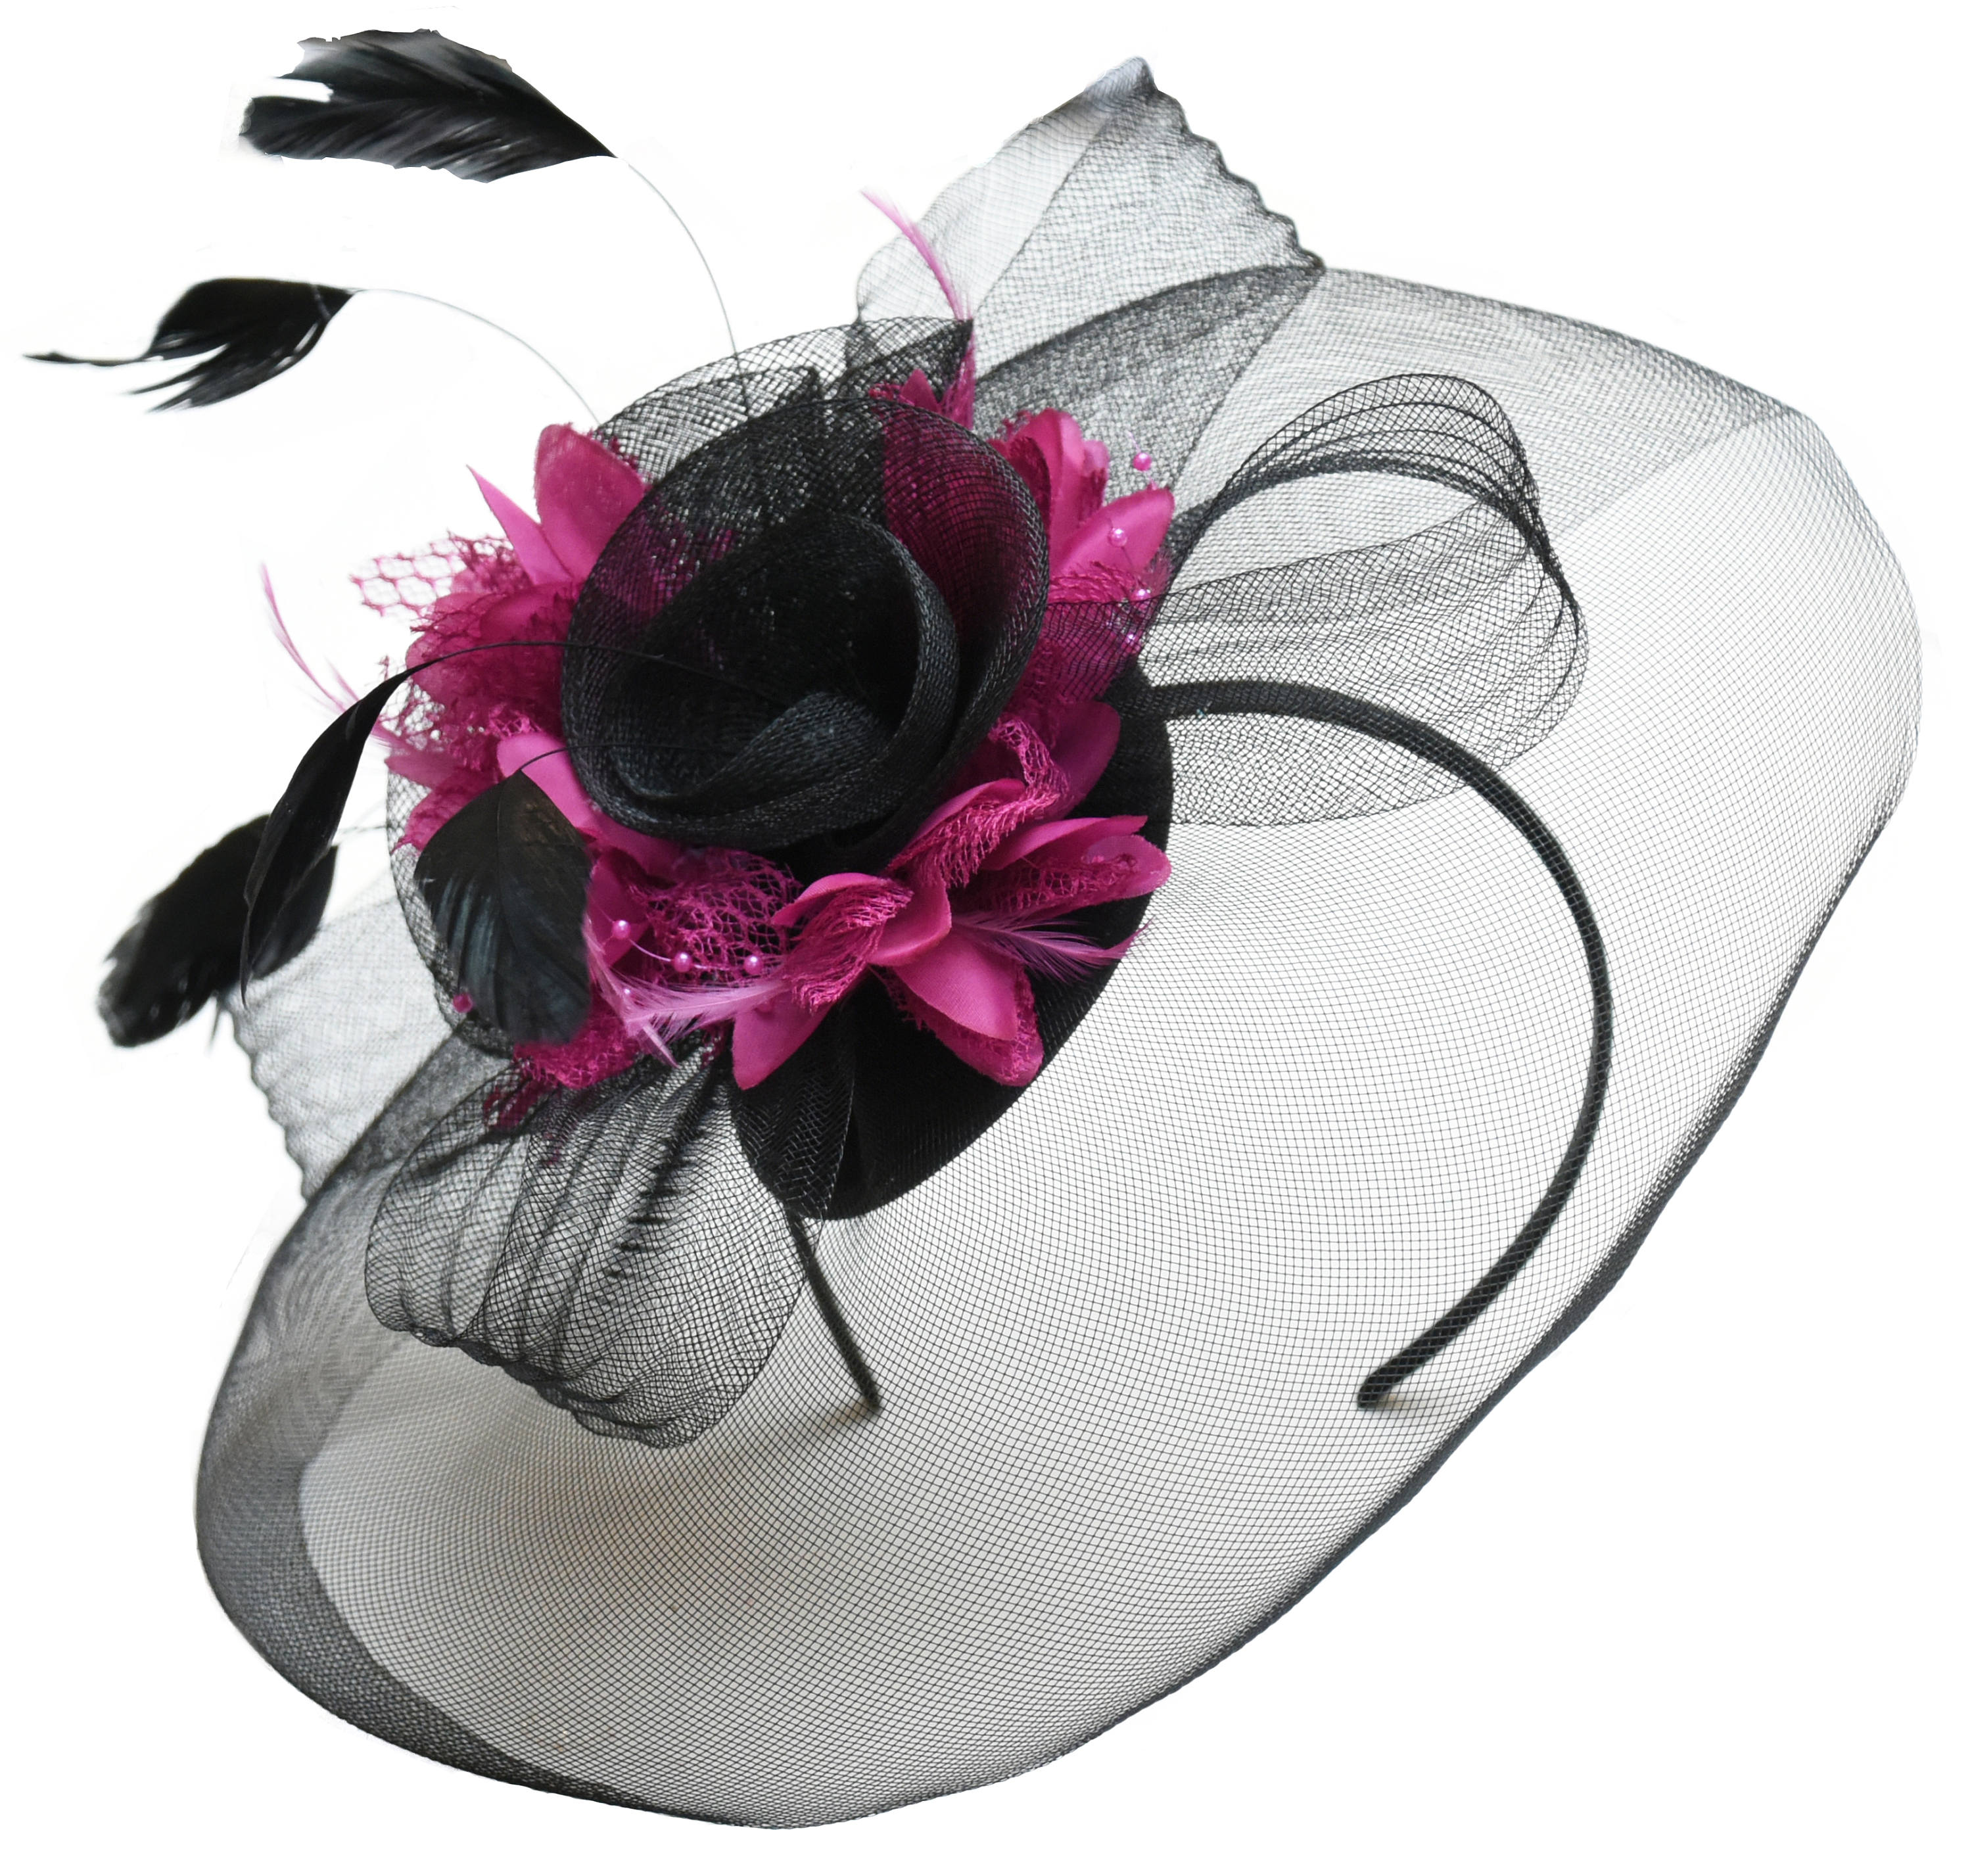 Caprilite Big Black and Fuchsia Hot Pink Fascinator Hat Veil Net Hair Clip Ascot Derby Races Wedding Headband Feather Flower